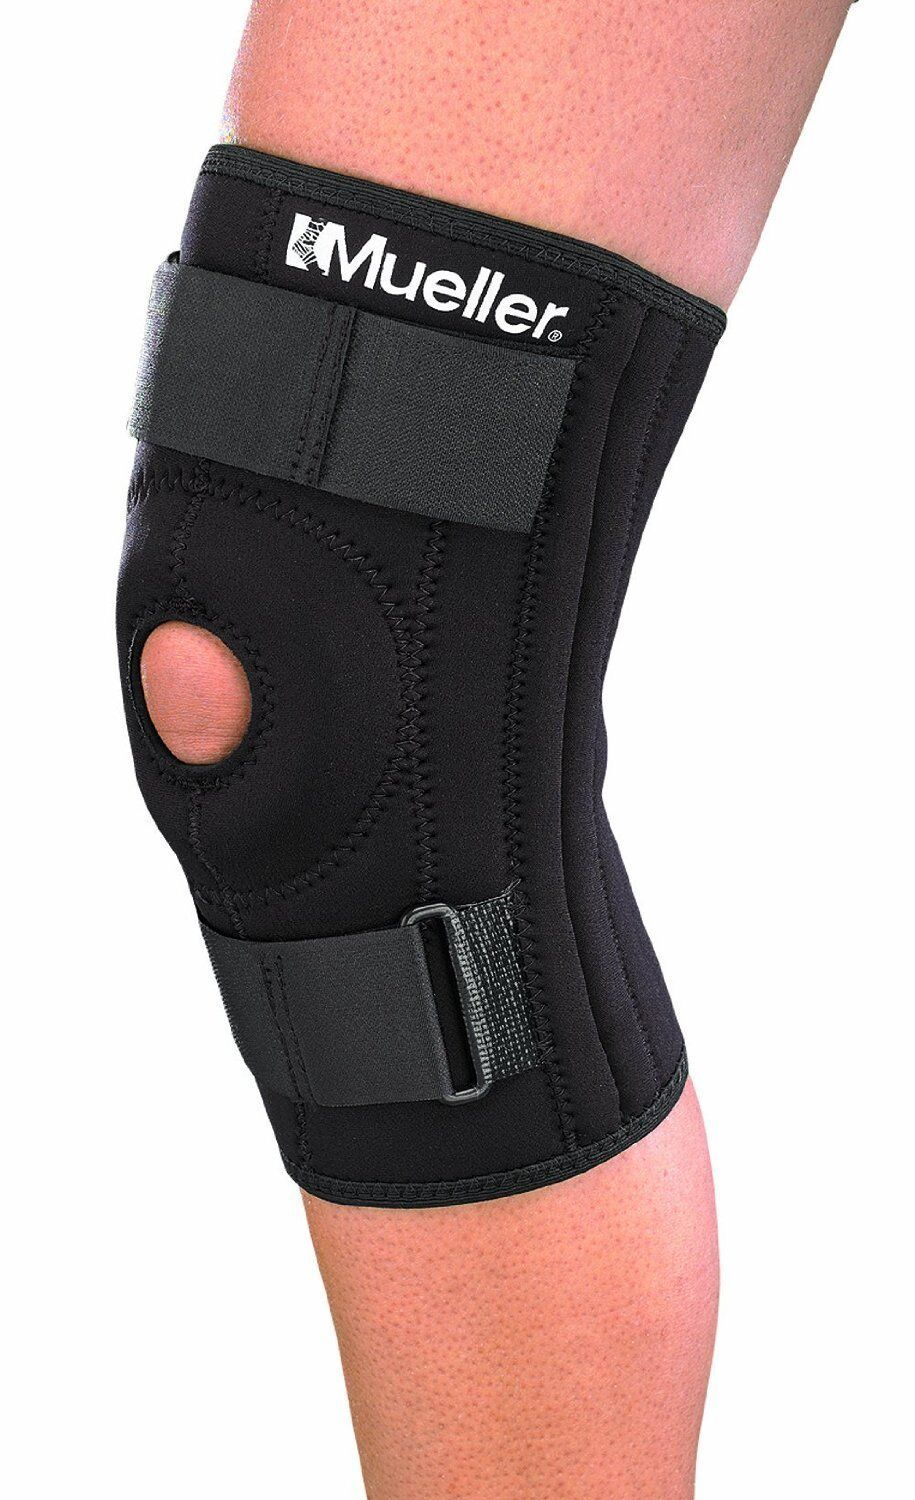 Mueller Sports 2313 Patella Stabilizer Knee Brace Support With Spring SALE